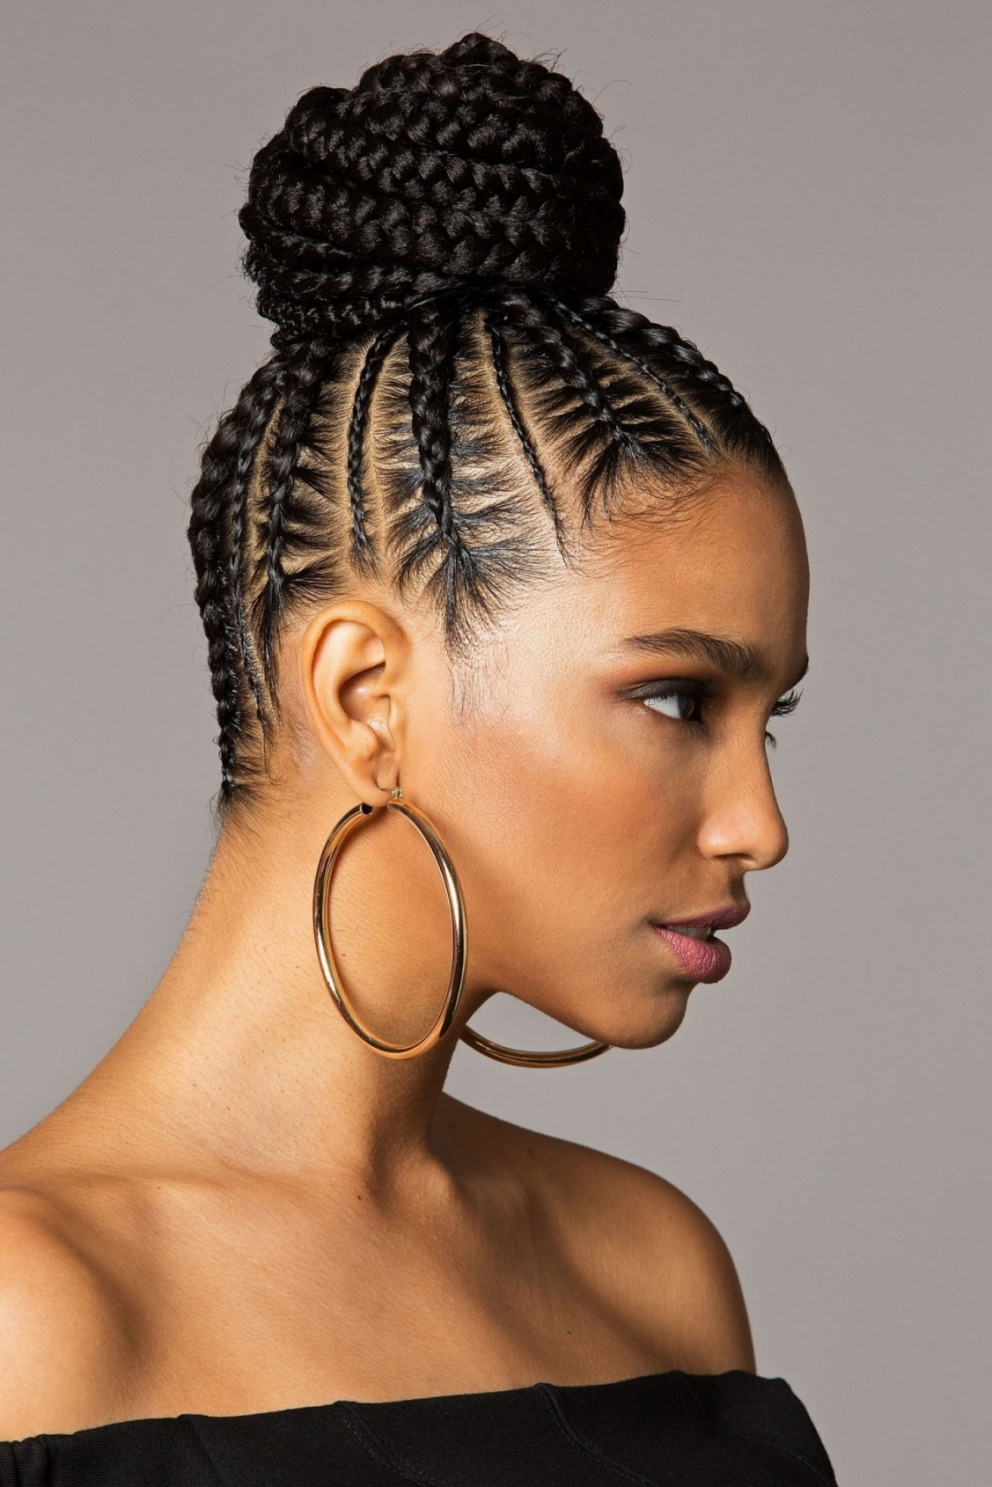 Updo Hairstyles For African American Women Braided Bun Hairstyles Pertaining To Widely Used African American Braided Bun Hairstyles (View 14 of 15)